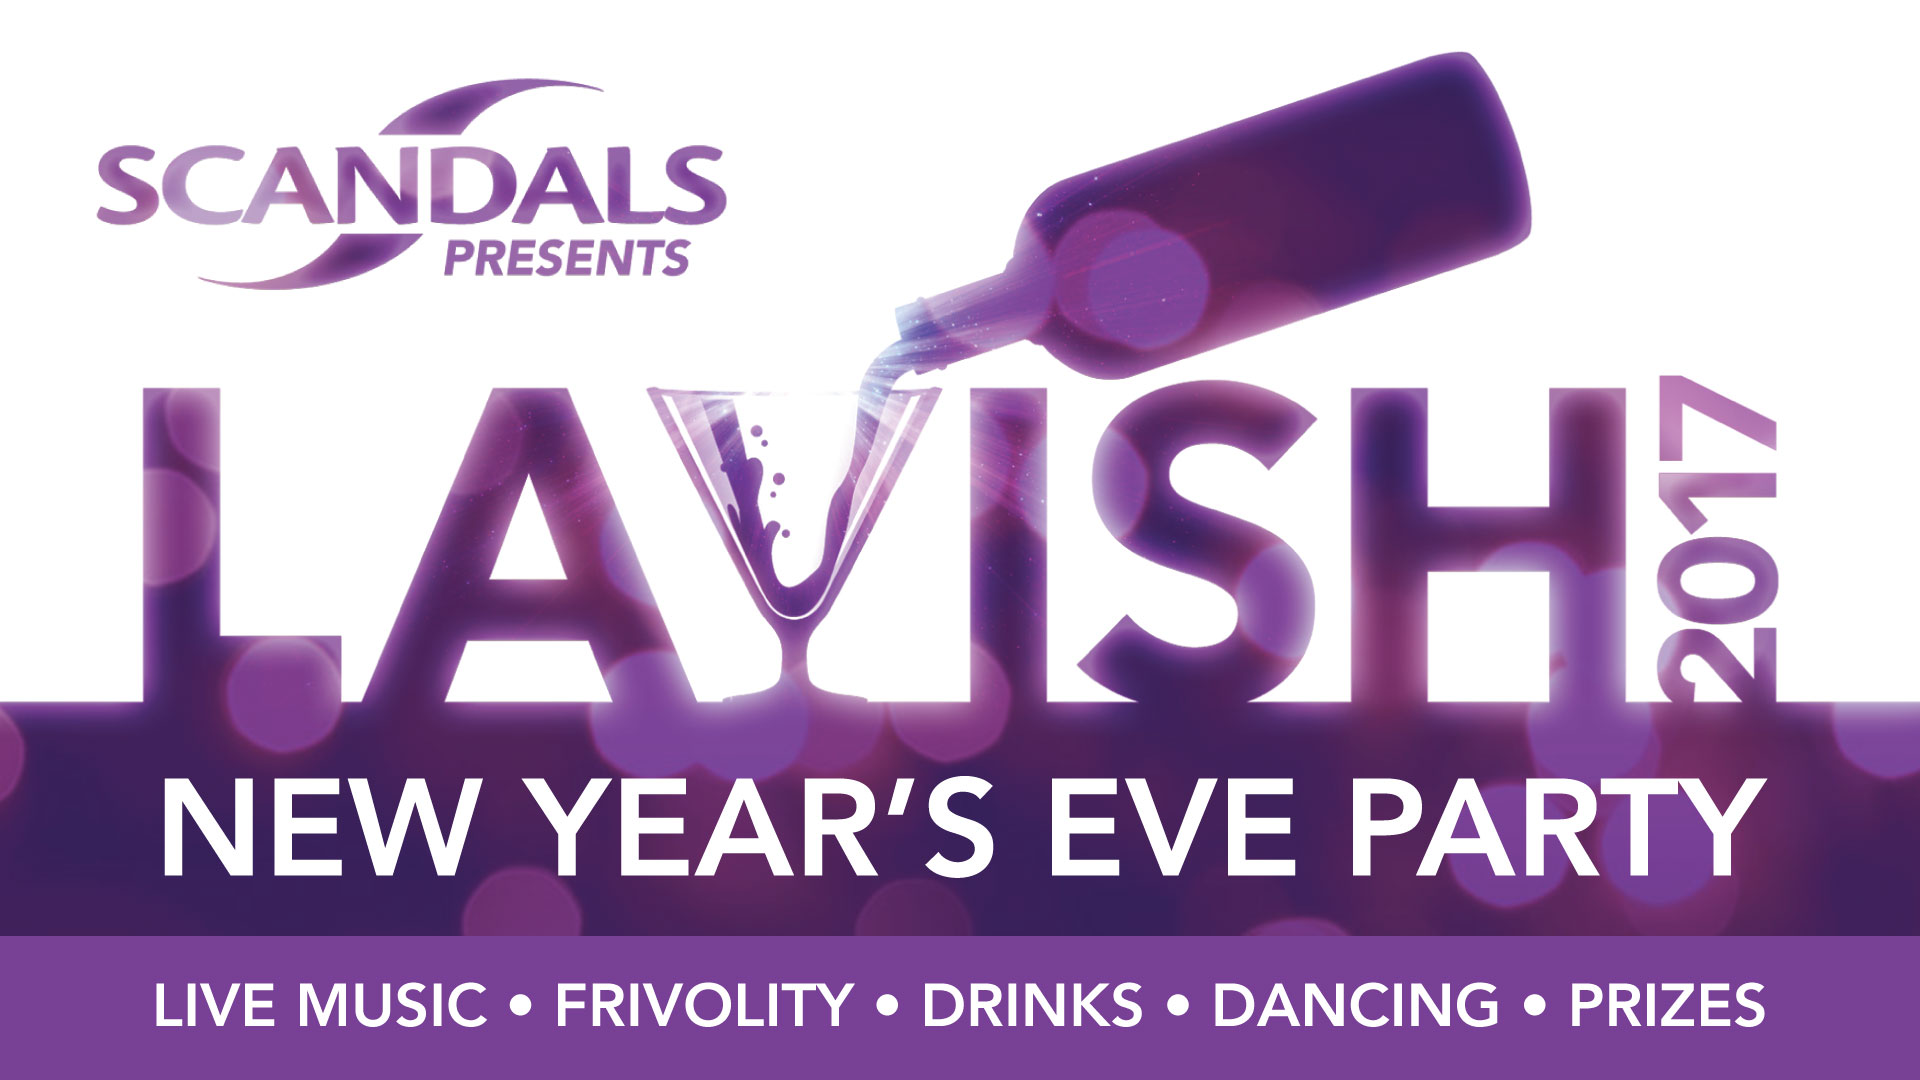 2017 is coming to an end and 2018 needs a warm welcoming so make sure to grab all of your friends and head to the most fabulous NYE party Portland has to offer! Drink specials all night long, plus Live Music by Return Flight and The Radio Riots as well as announcing the Ultimate Prize Winner from this year's Giving Tree! We'll see you there!   Be sure to join the event on Facebook here!